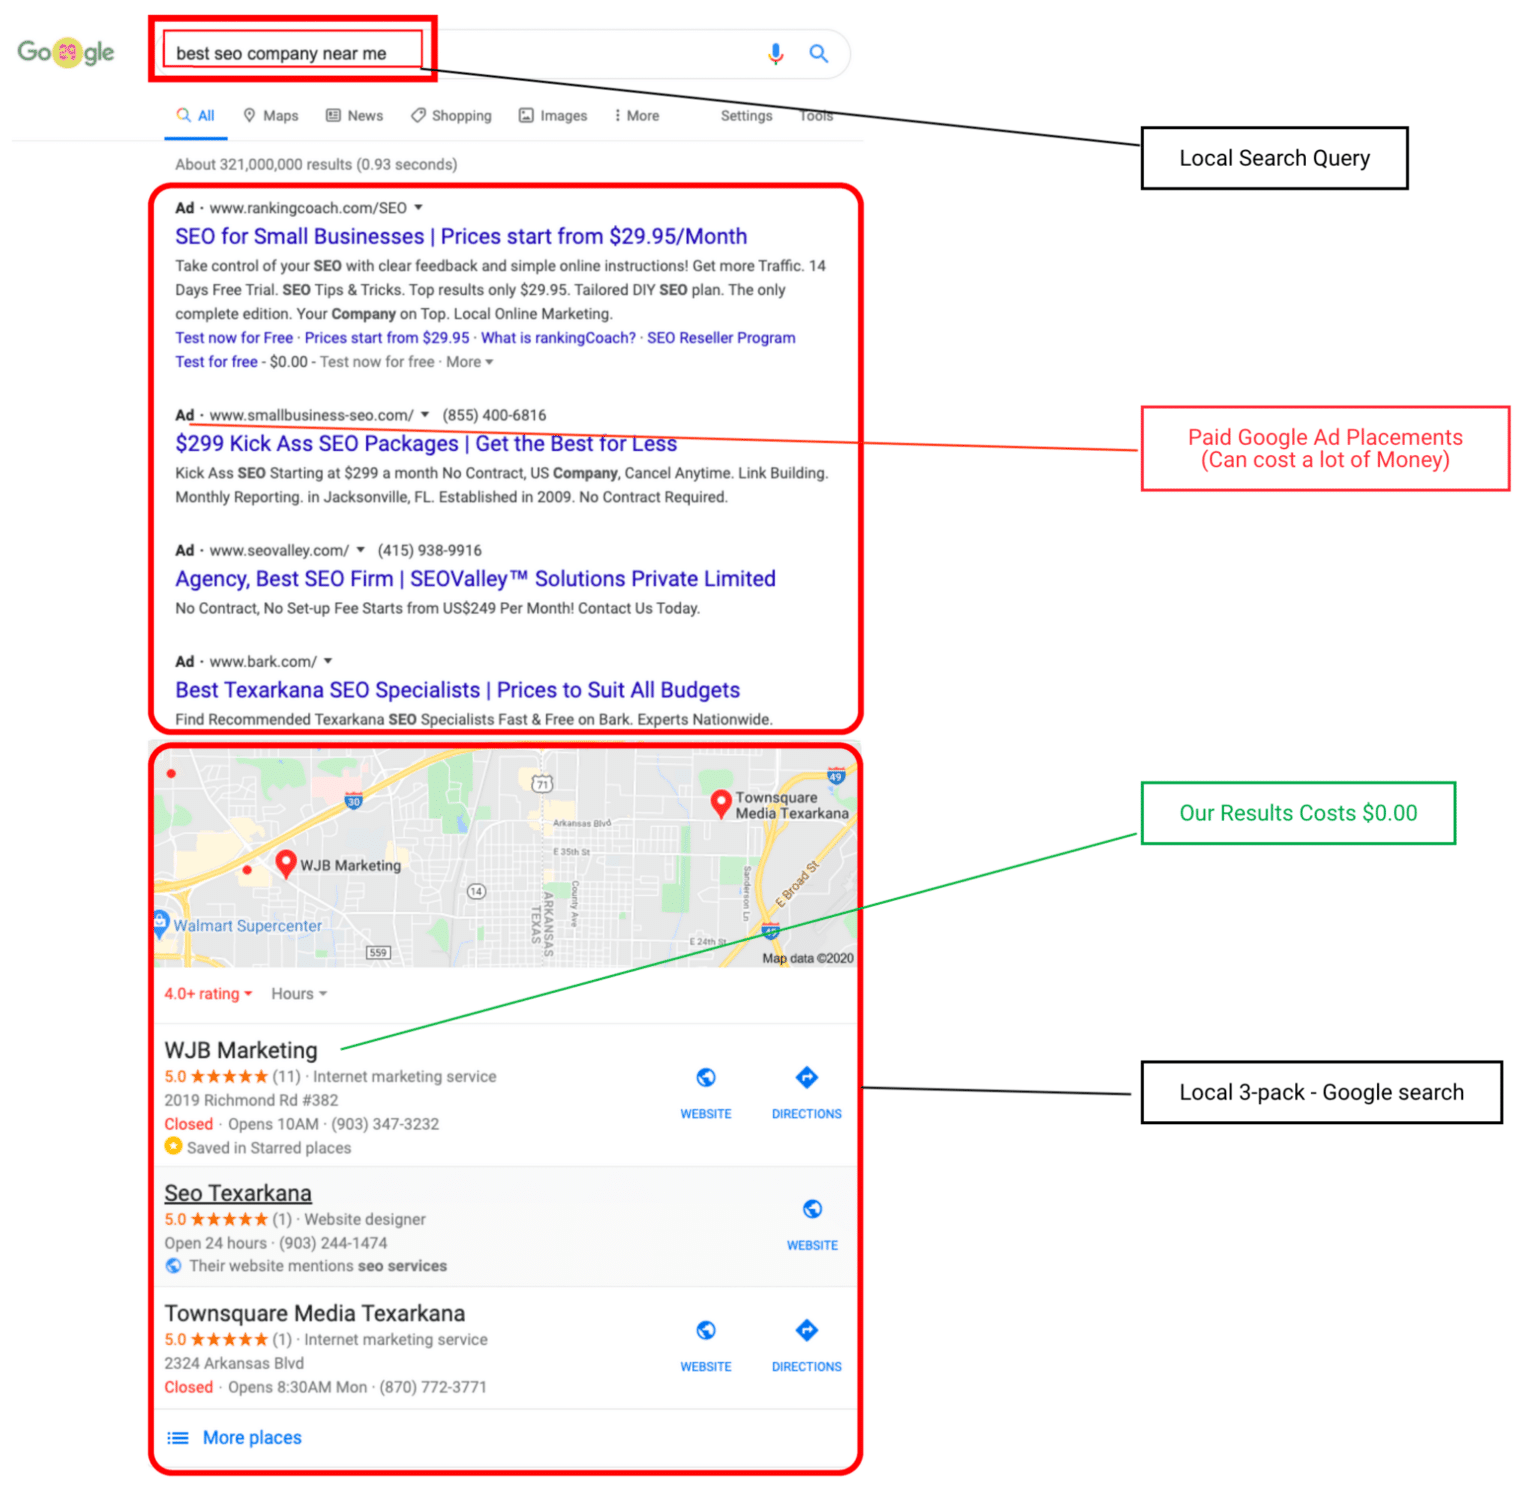 BEST-SEO-COMPANY-GOOGLE-SEARCH.png